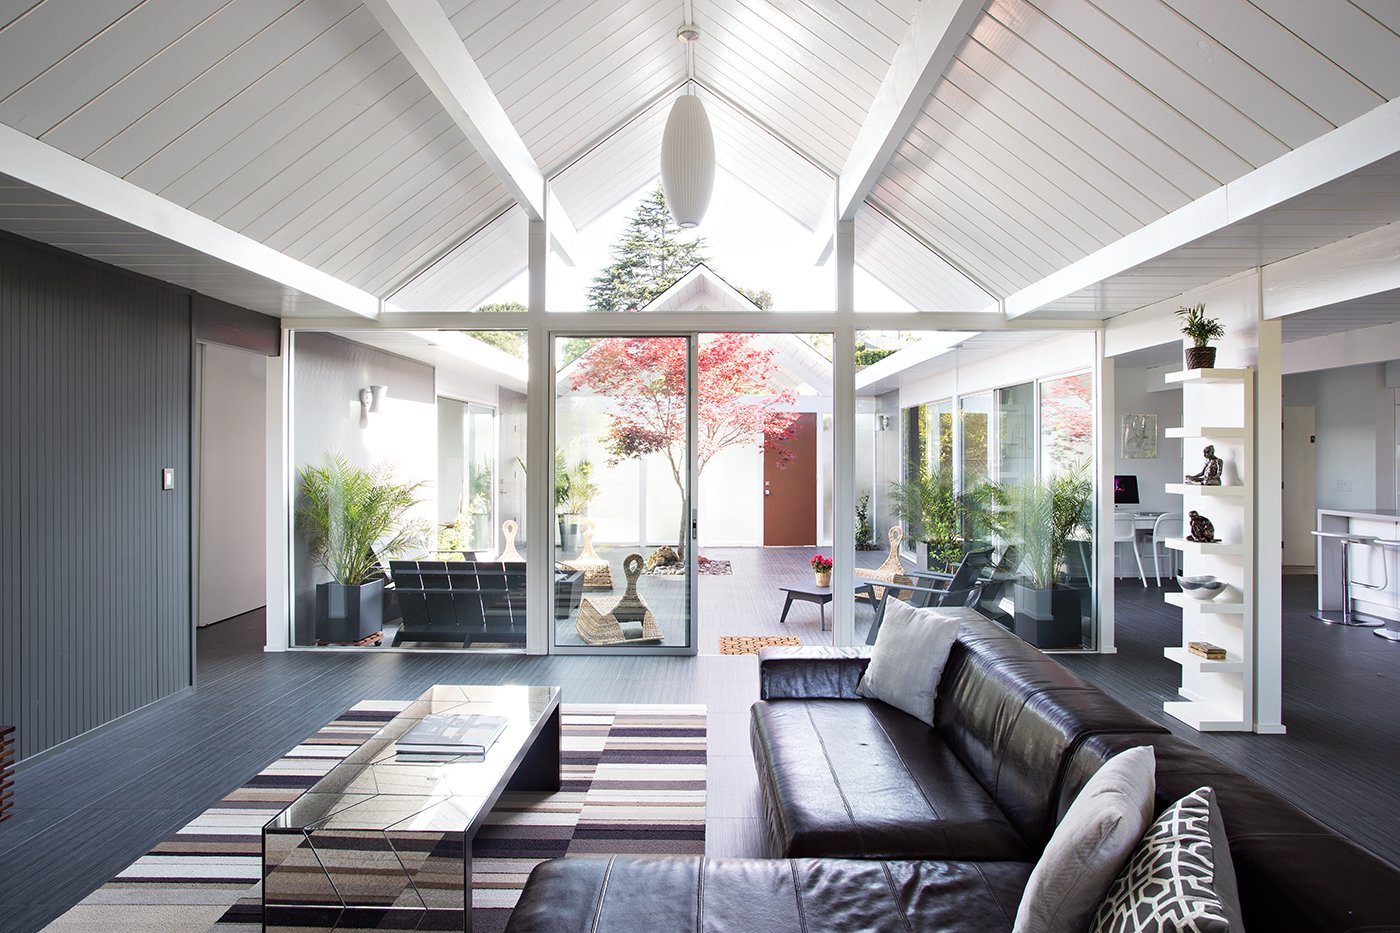 Here, the relationship between indoors and outdoors is on full display. The architects aimed to create a smooth transition between the two areas by incorporating glass doors that don't obstruct any views. Photo by Mariko Reed.  Modern Eichler Renovations by Allie Weiss from Eichler Remodel in Burlingame, California